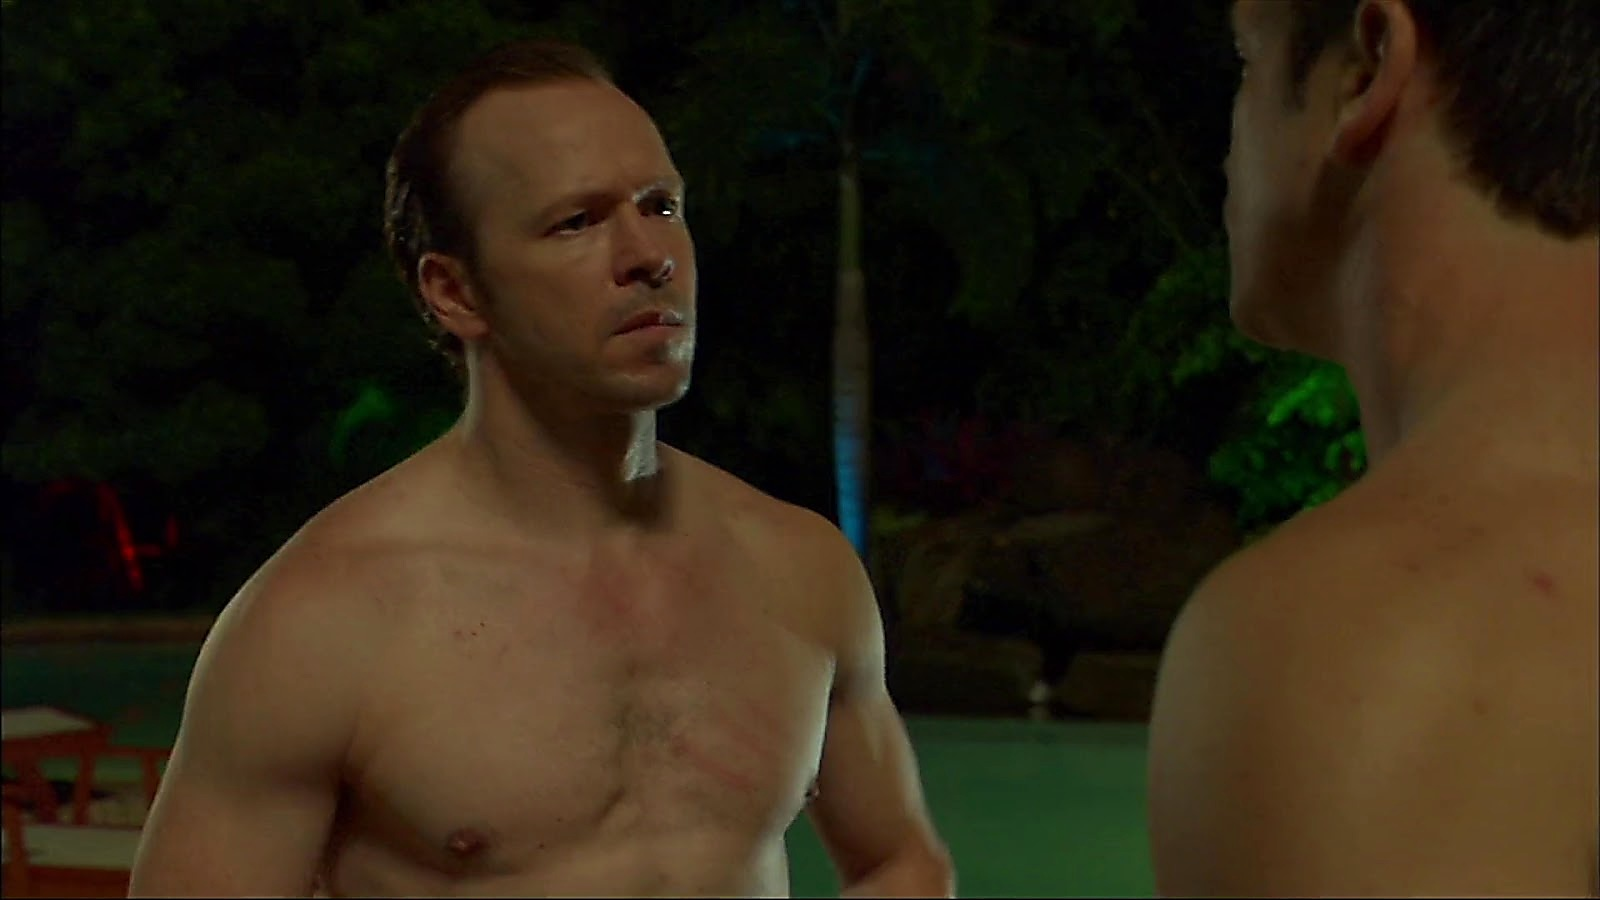 Donnie Wahlberg sexy shirtless scene January 2, 2020, 11am